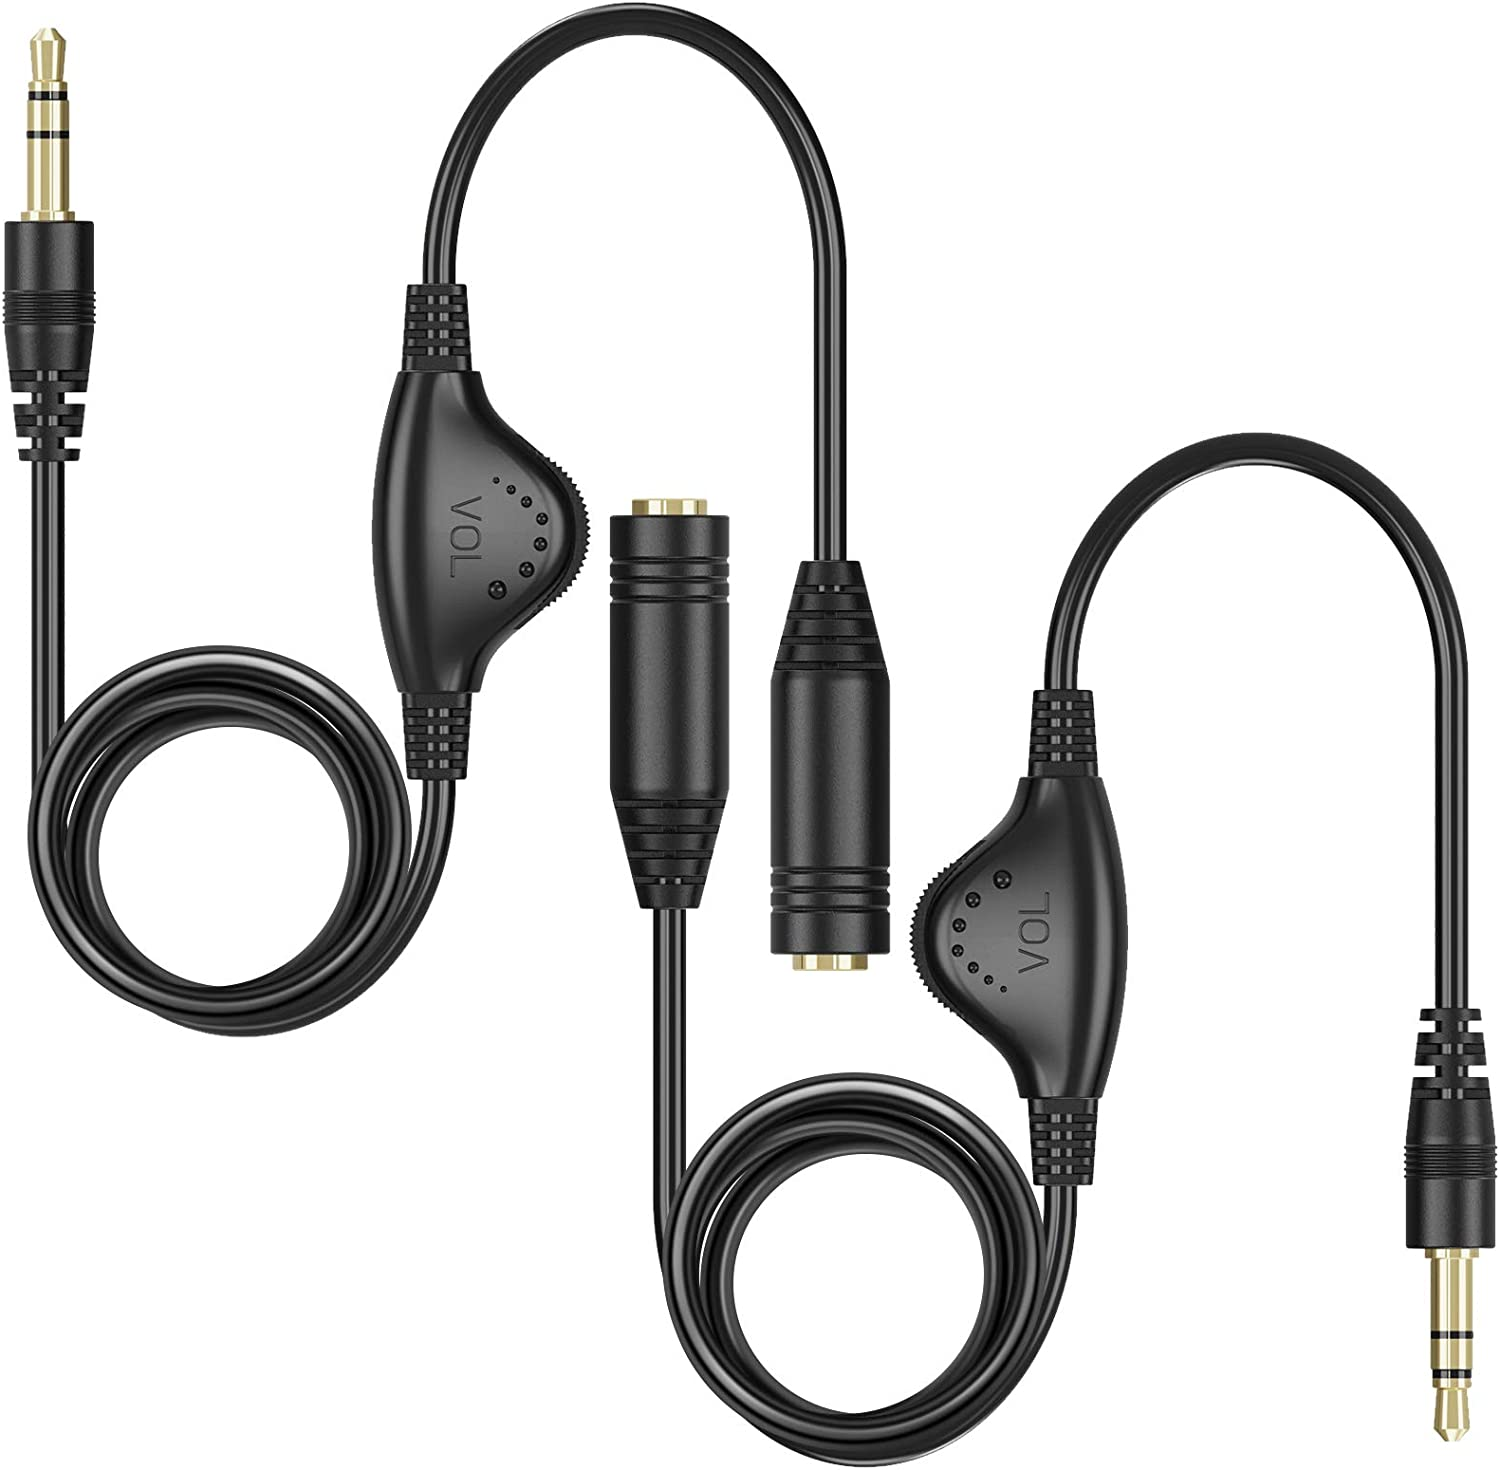 Cables Audio Cables 2 Packs 3.5mm Headphone Extension Cable PChero ...